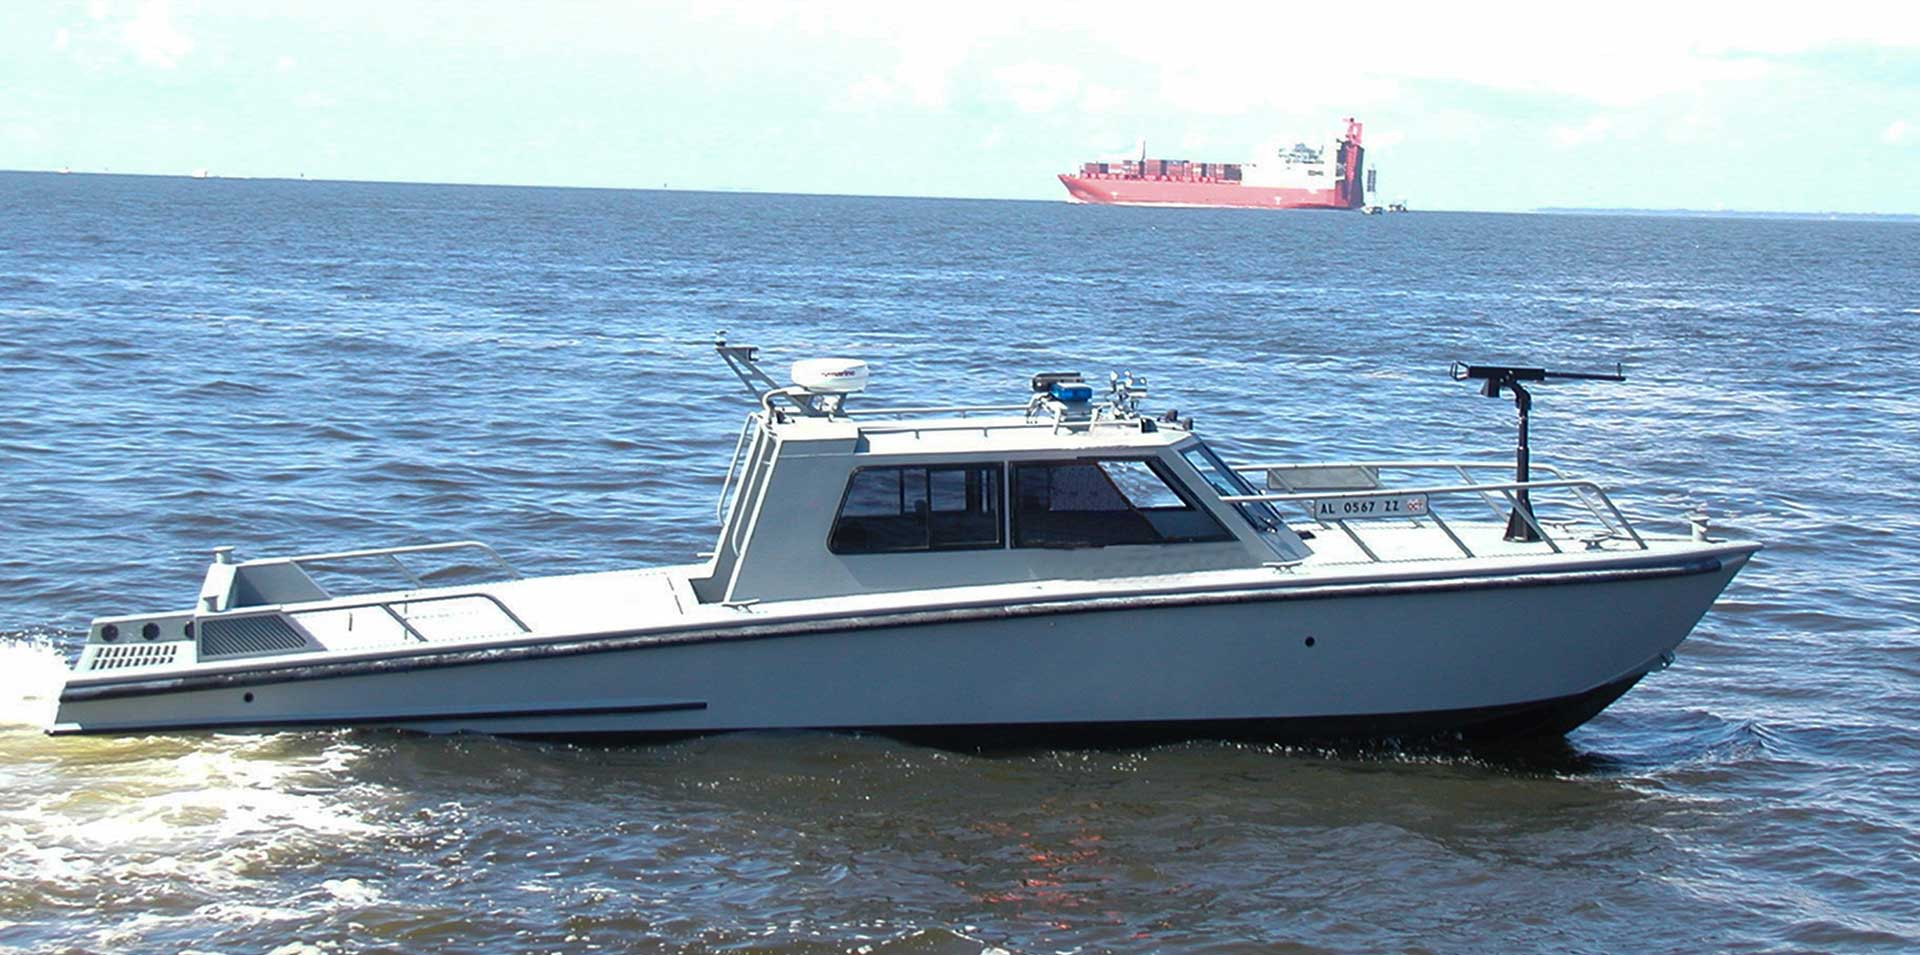 Silver Ships Endeavor Series patrol vessel with weapon mount